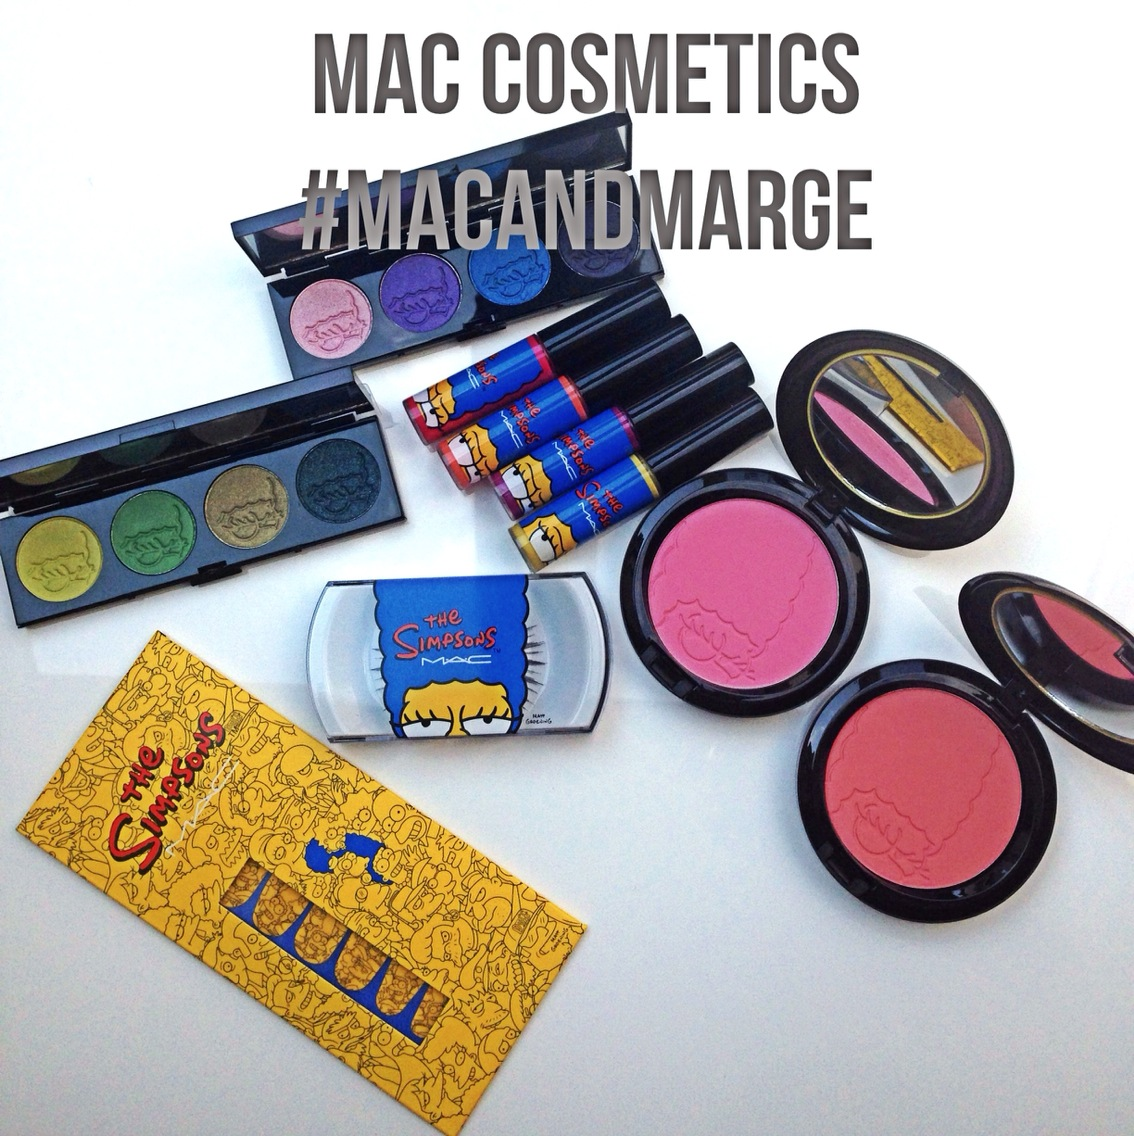 #MACANDMARGE: The Simpsons Makeup Collection Fall 2014